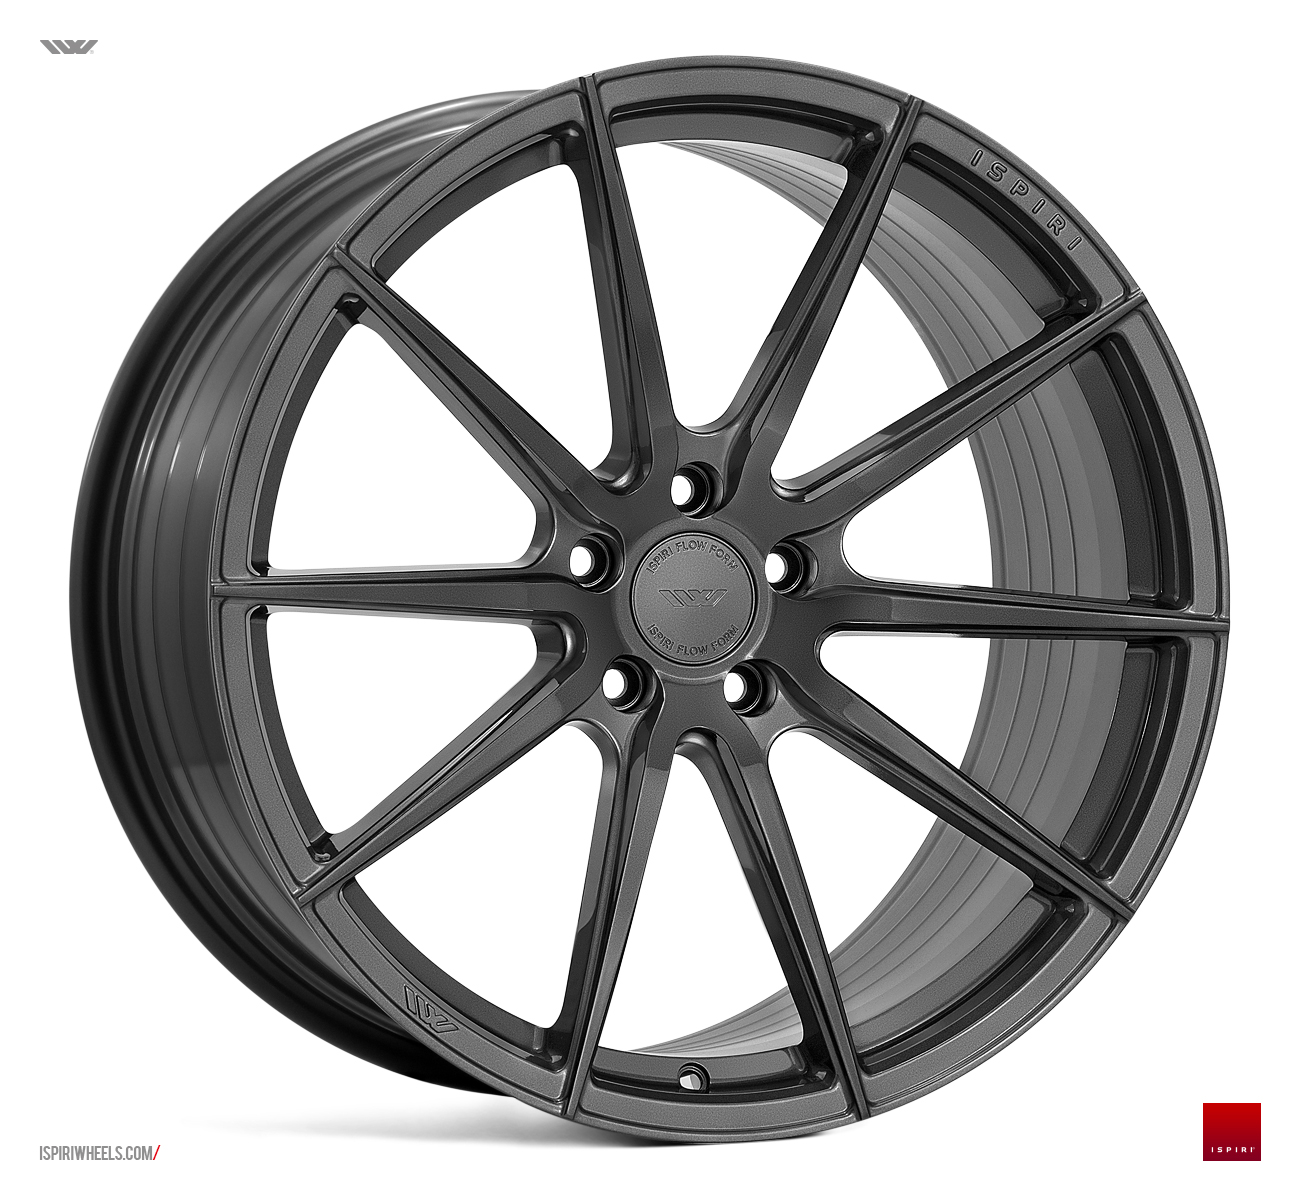 "NEW 19"" ISPIRI FFR1 MULTI-SPOKE ALLOY WHEELS IN CARBON GRAPHITE, DEEPER CONCAVE 9.5"" OR 10"" REARS - VARIOUS OFFSETS"